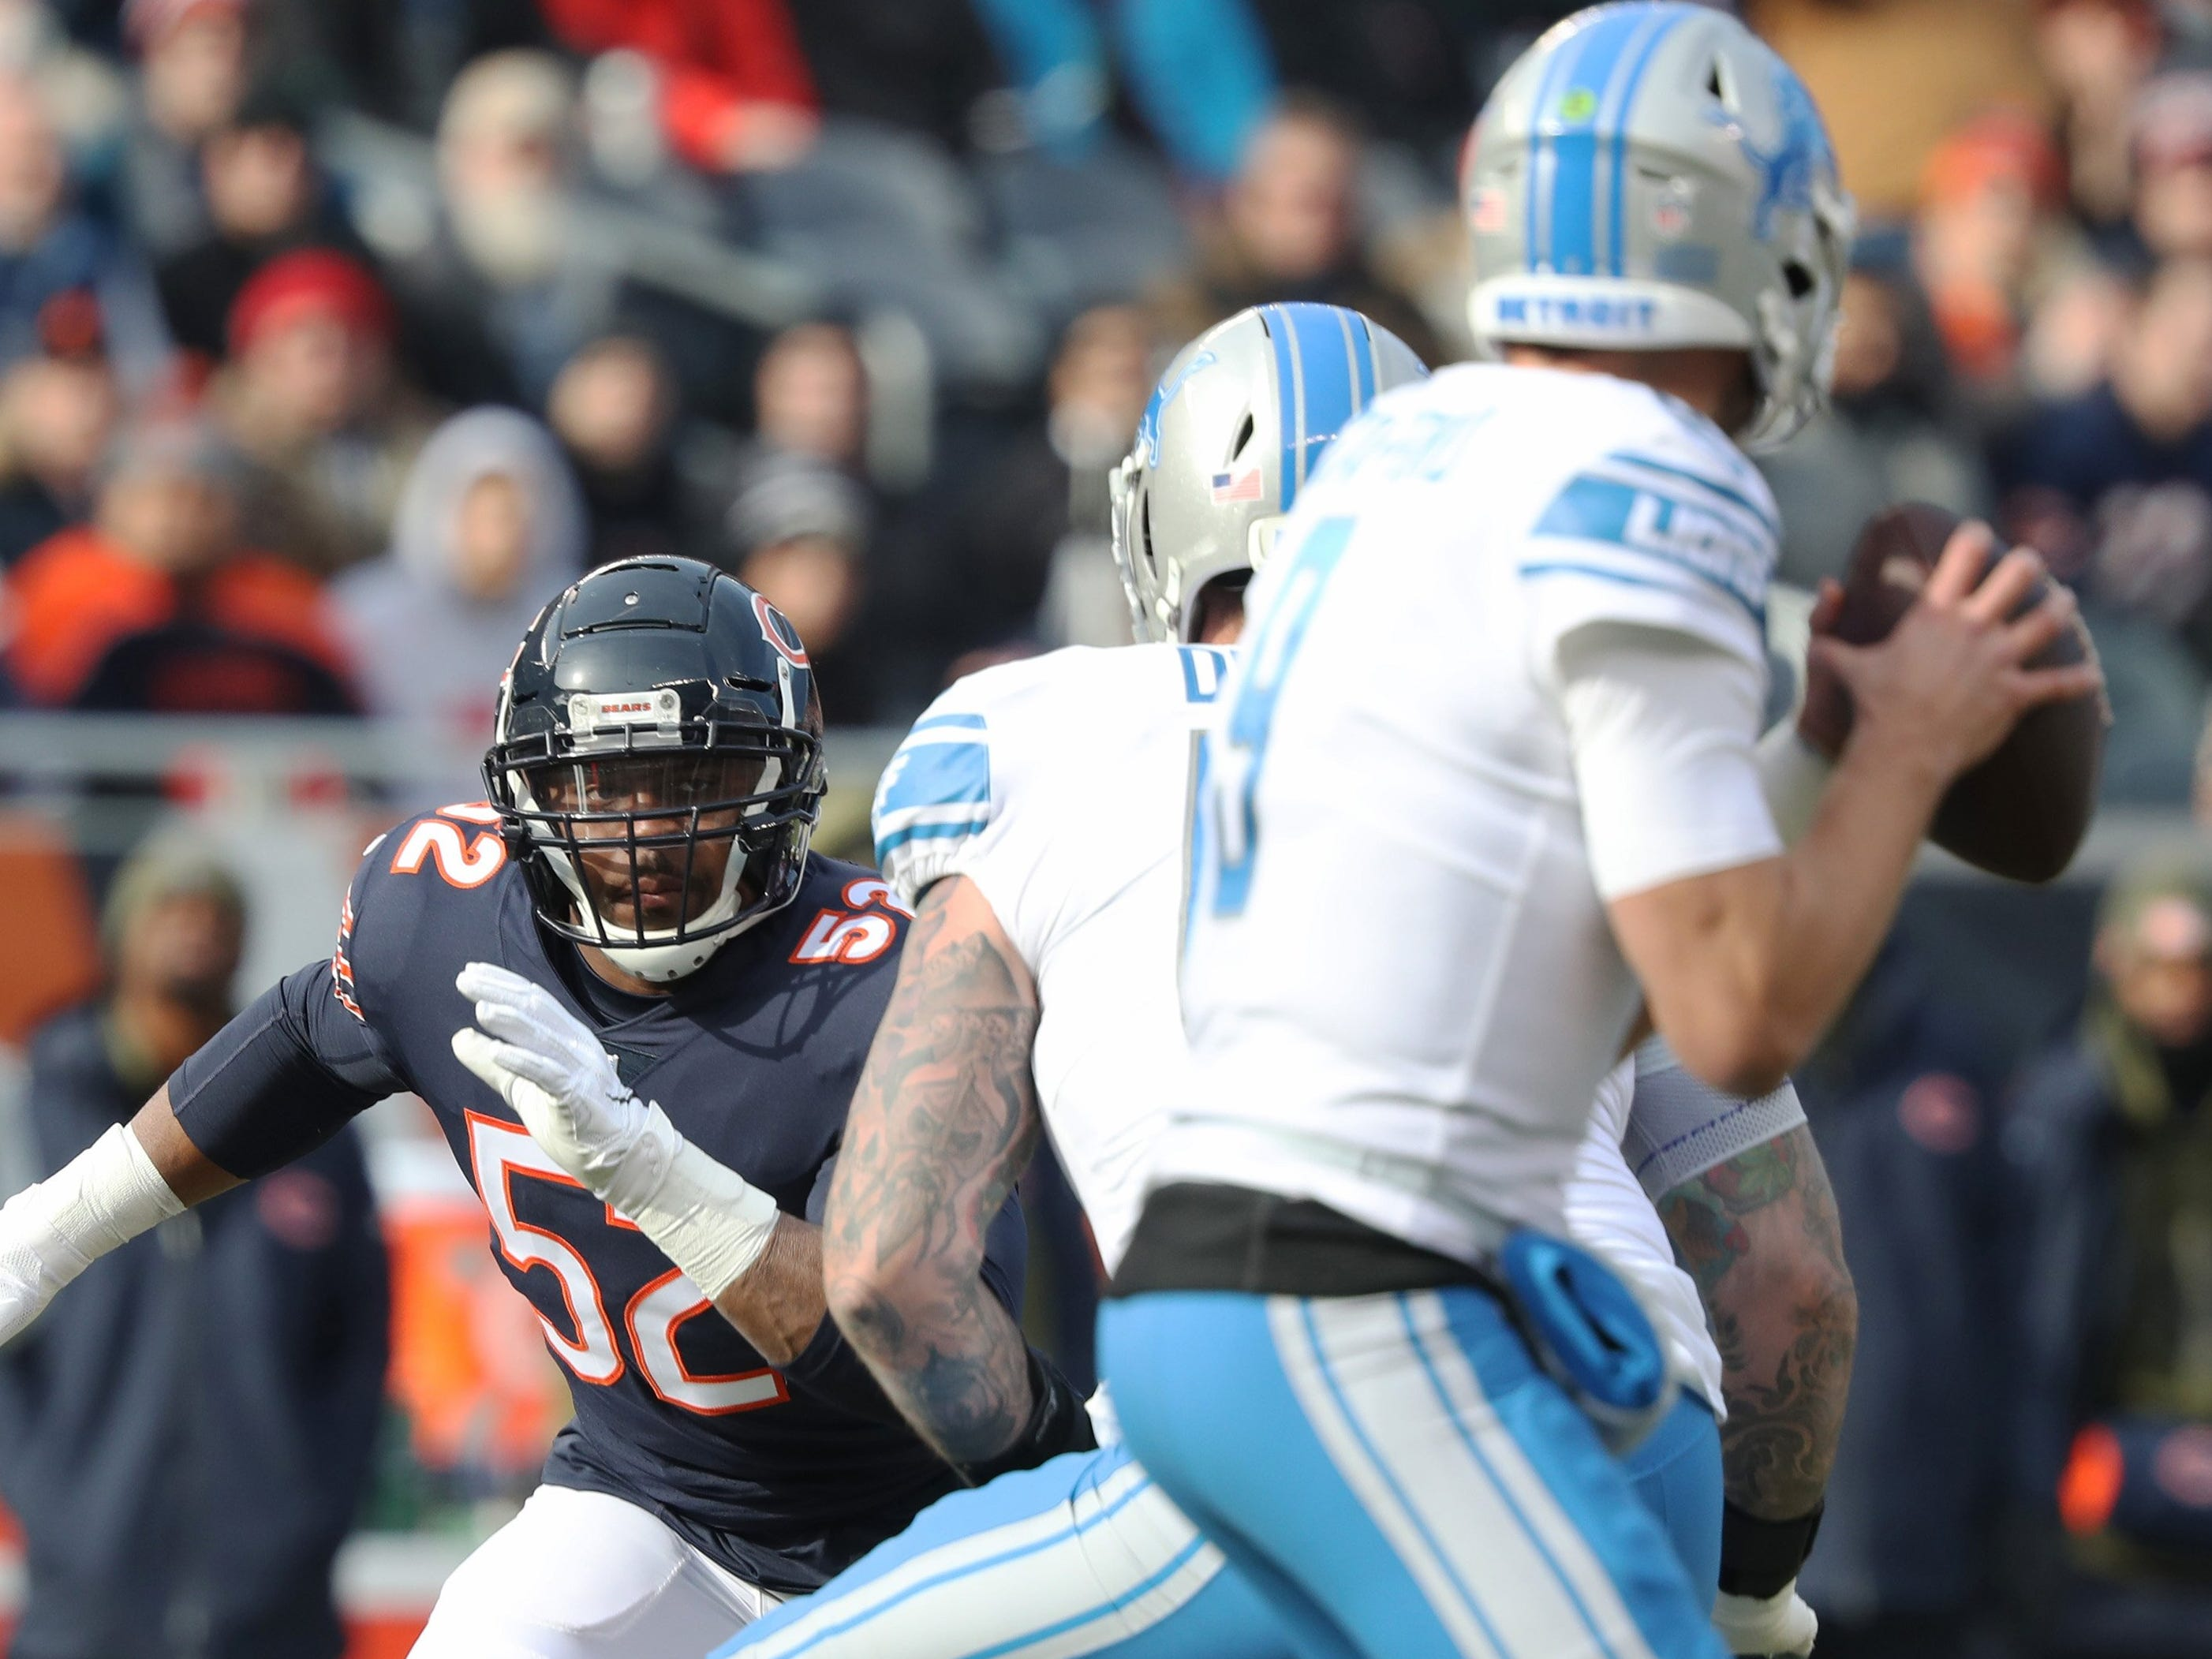 Bears linebacker Khalil Mack chases after Lions quarterback Matthew Stafford during the Lions' 34-22 loss on Sunday, Nov. 11, 2018, in Chicago.